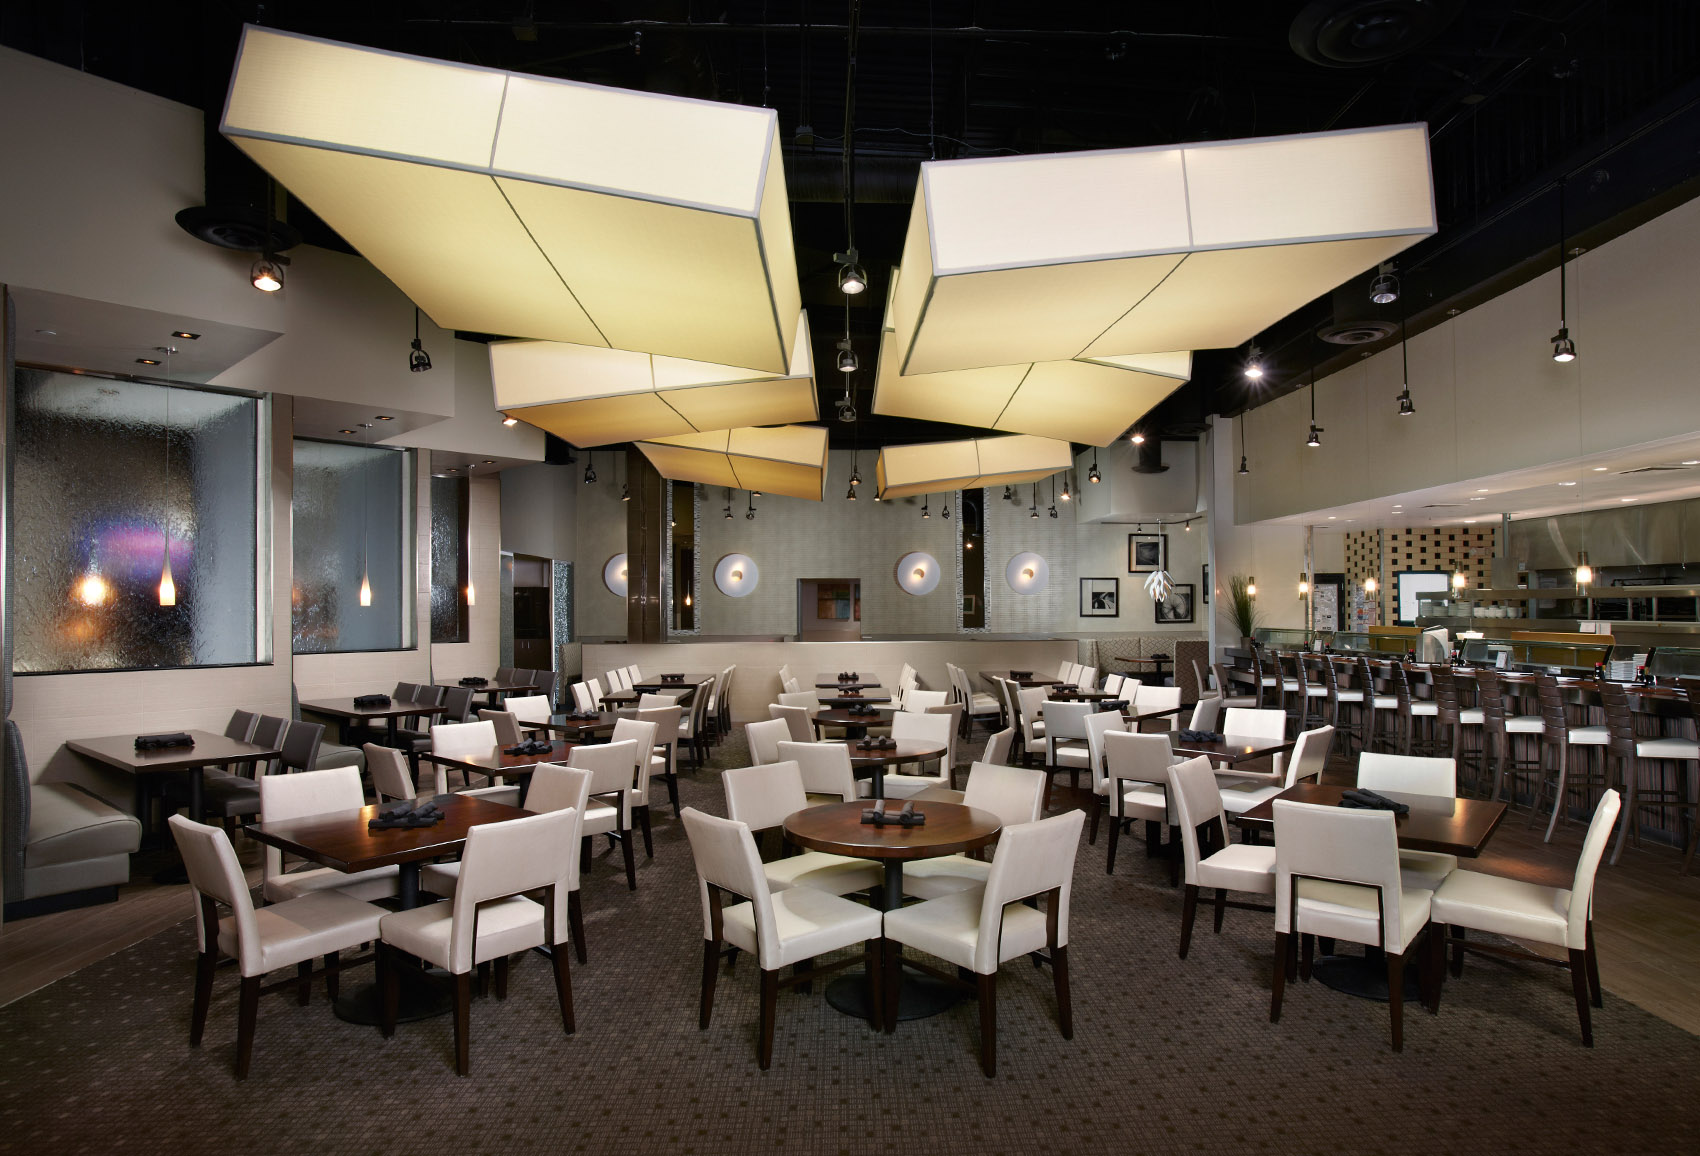 Kona Main Dining Room.jpg